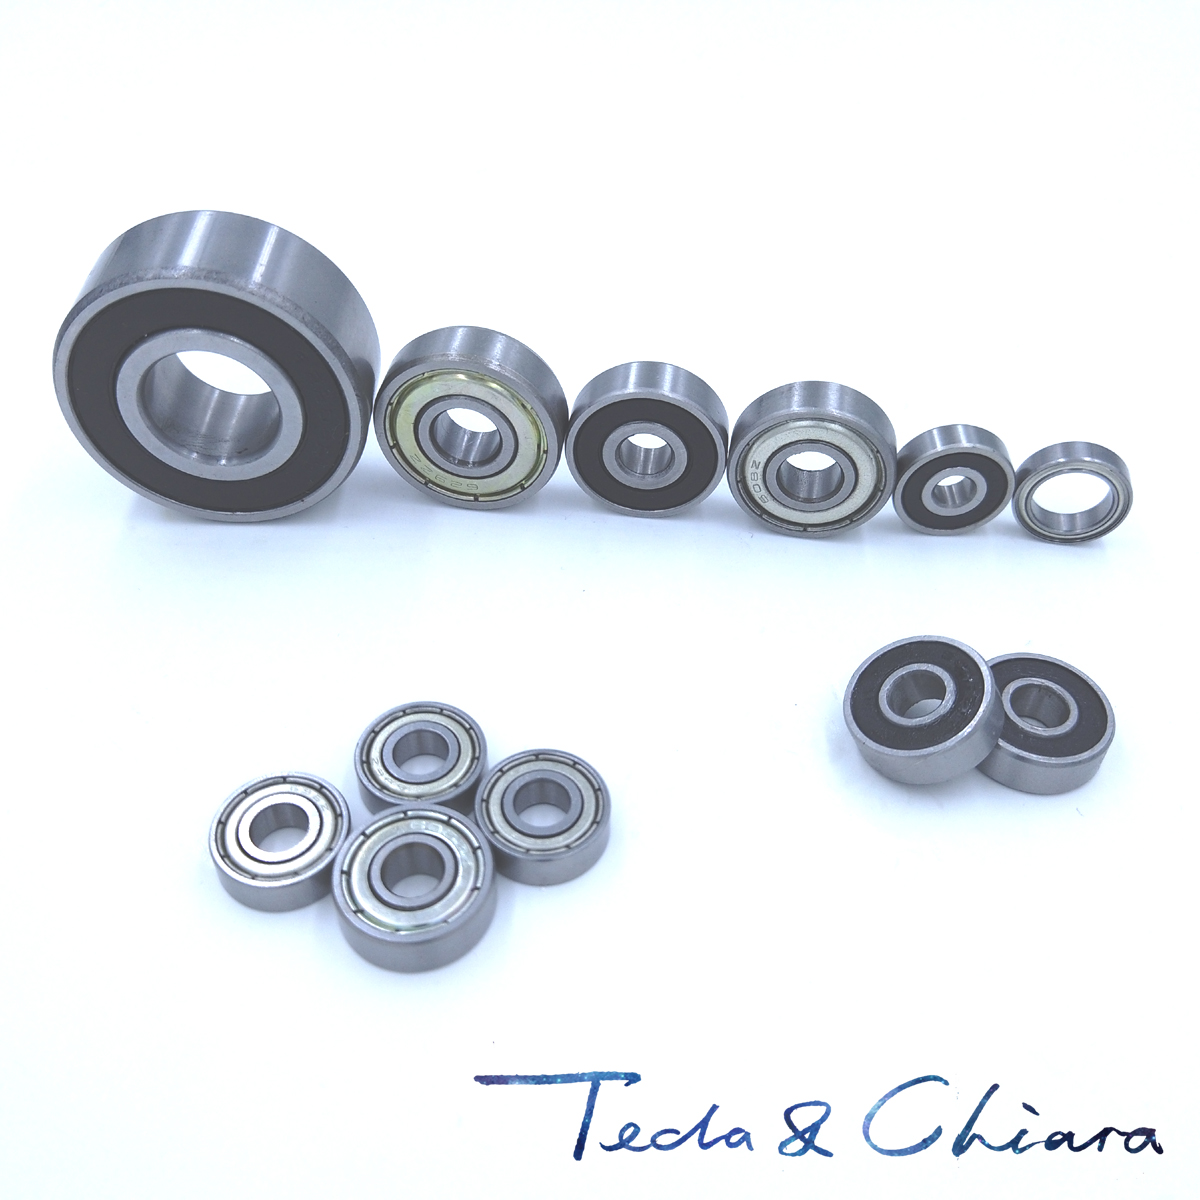 6200 6200ZZ <font><b>6200RS</b></font> 6200-2Z 6200Z 6200-2RS ZZ RS RZ 2RZ Deep Groove Ball Bearings 10 x 30 x 9mm image